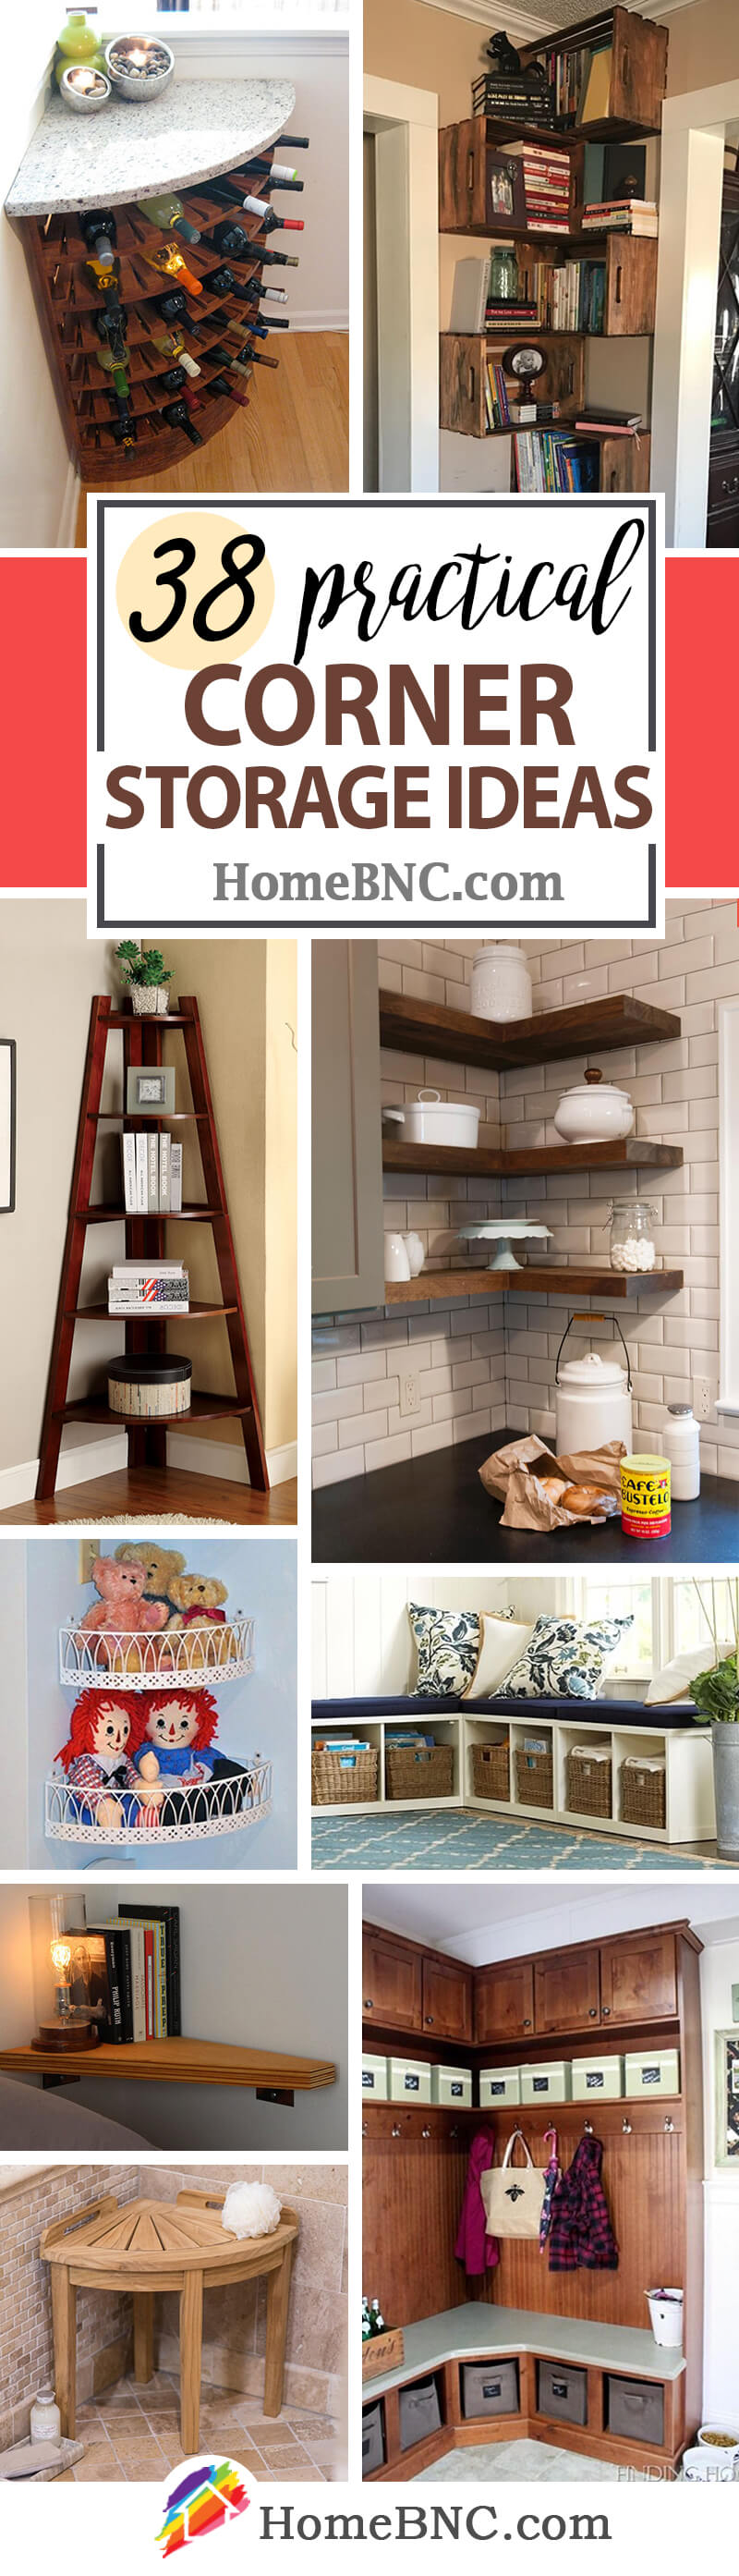 Corner Storage Ideas